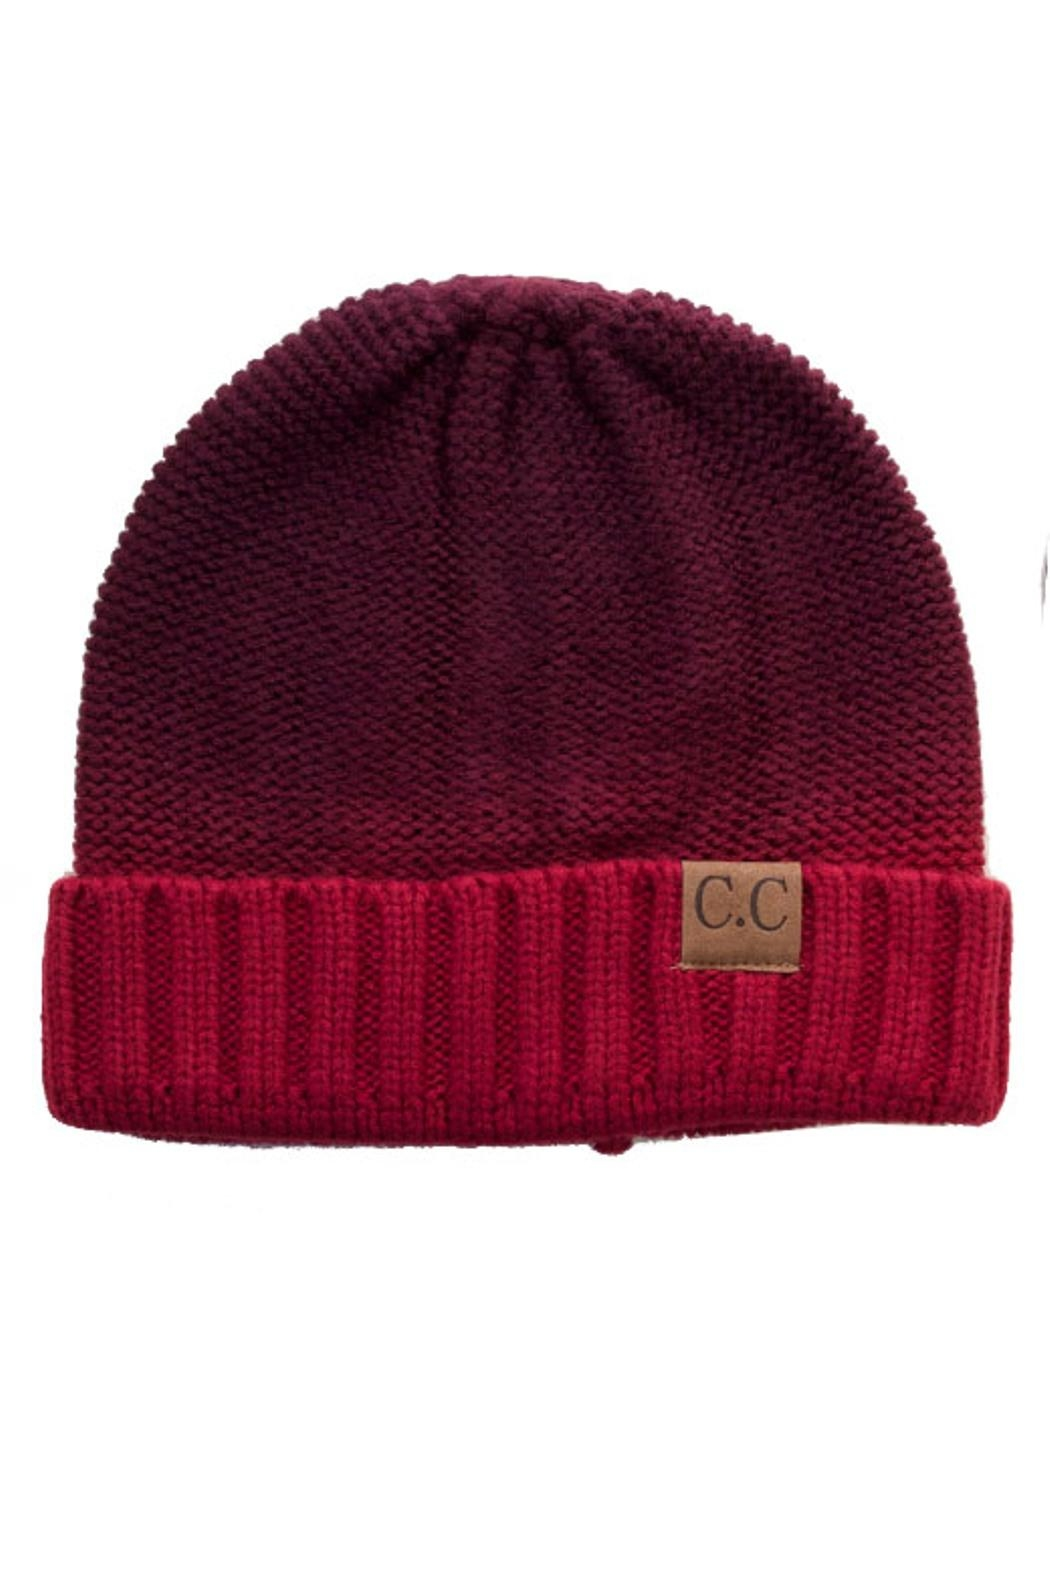 C.C. Two Tone Beanie - Main Image